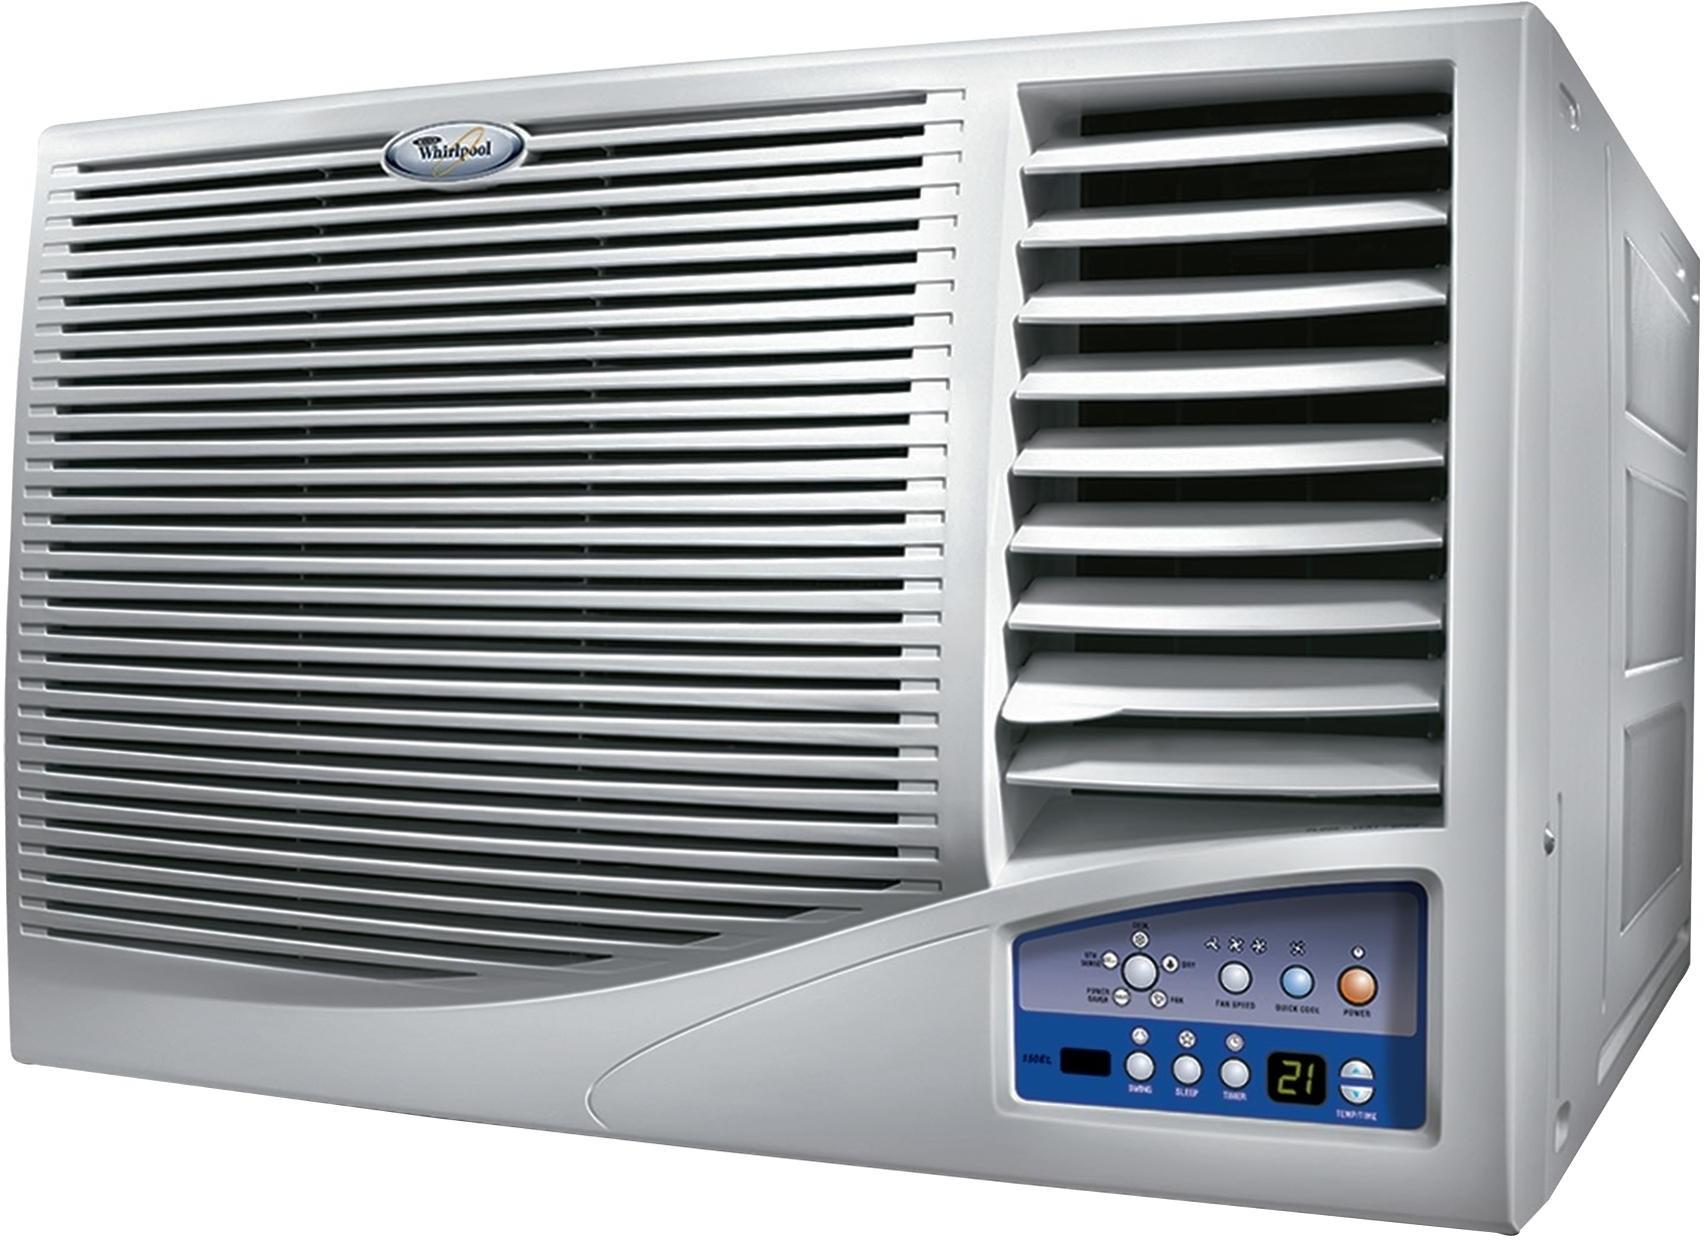 Whirlpool Magicool Platinum V WAC 1.2 Ton 5 Star Window AC Price in  #284776